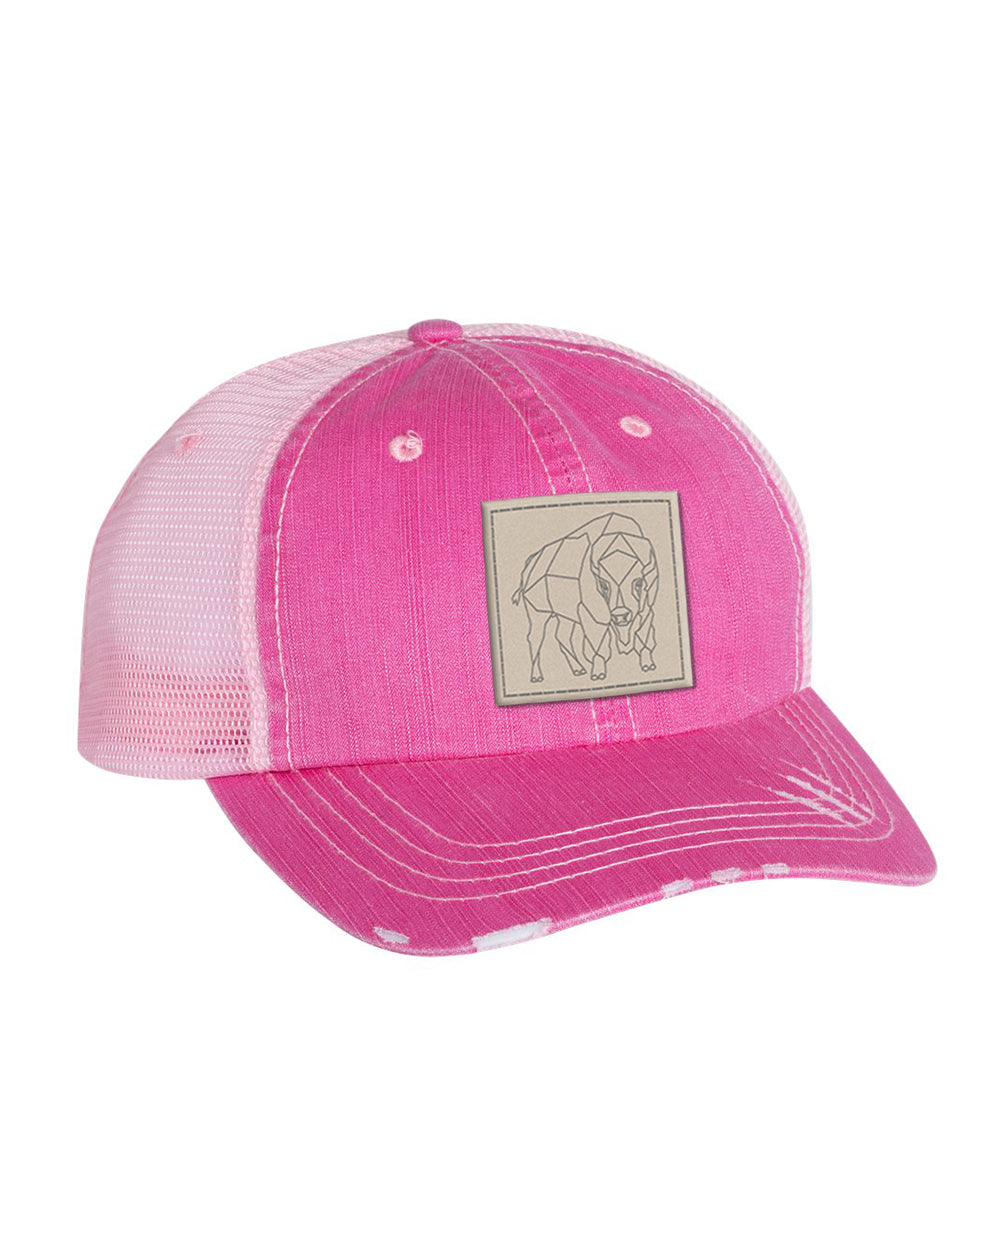 Bison Patch Unstructured Cap - Fuschia/Pink - Side